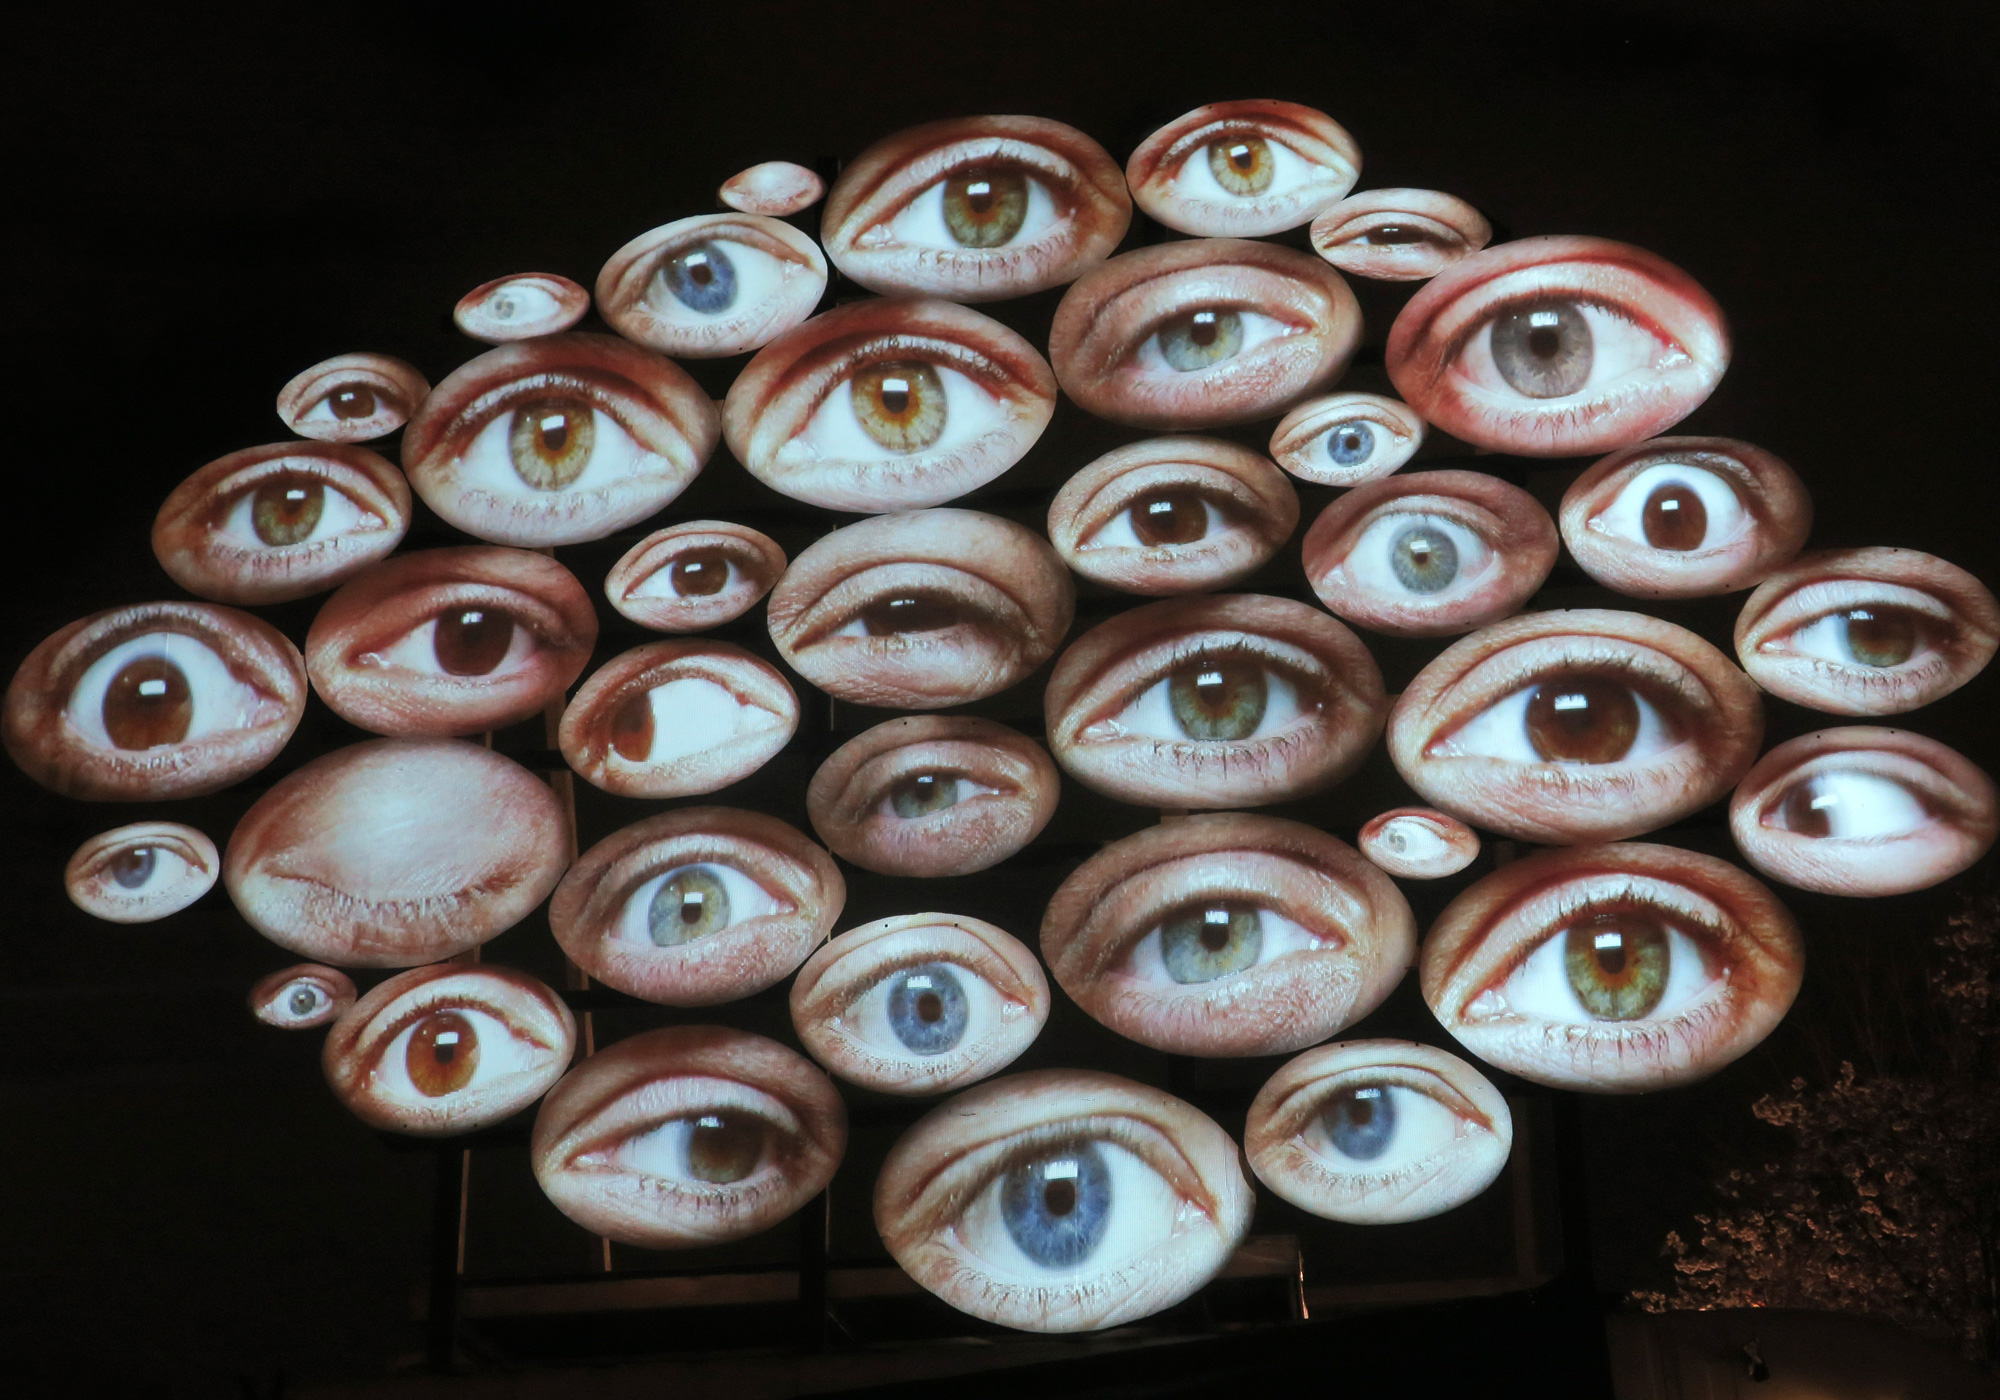 The Eyes / Kulturzentrum HAFEN 2 © Silvan Hasselbach, Luminale 2020